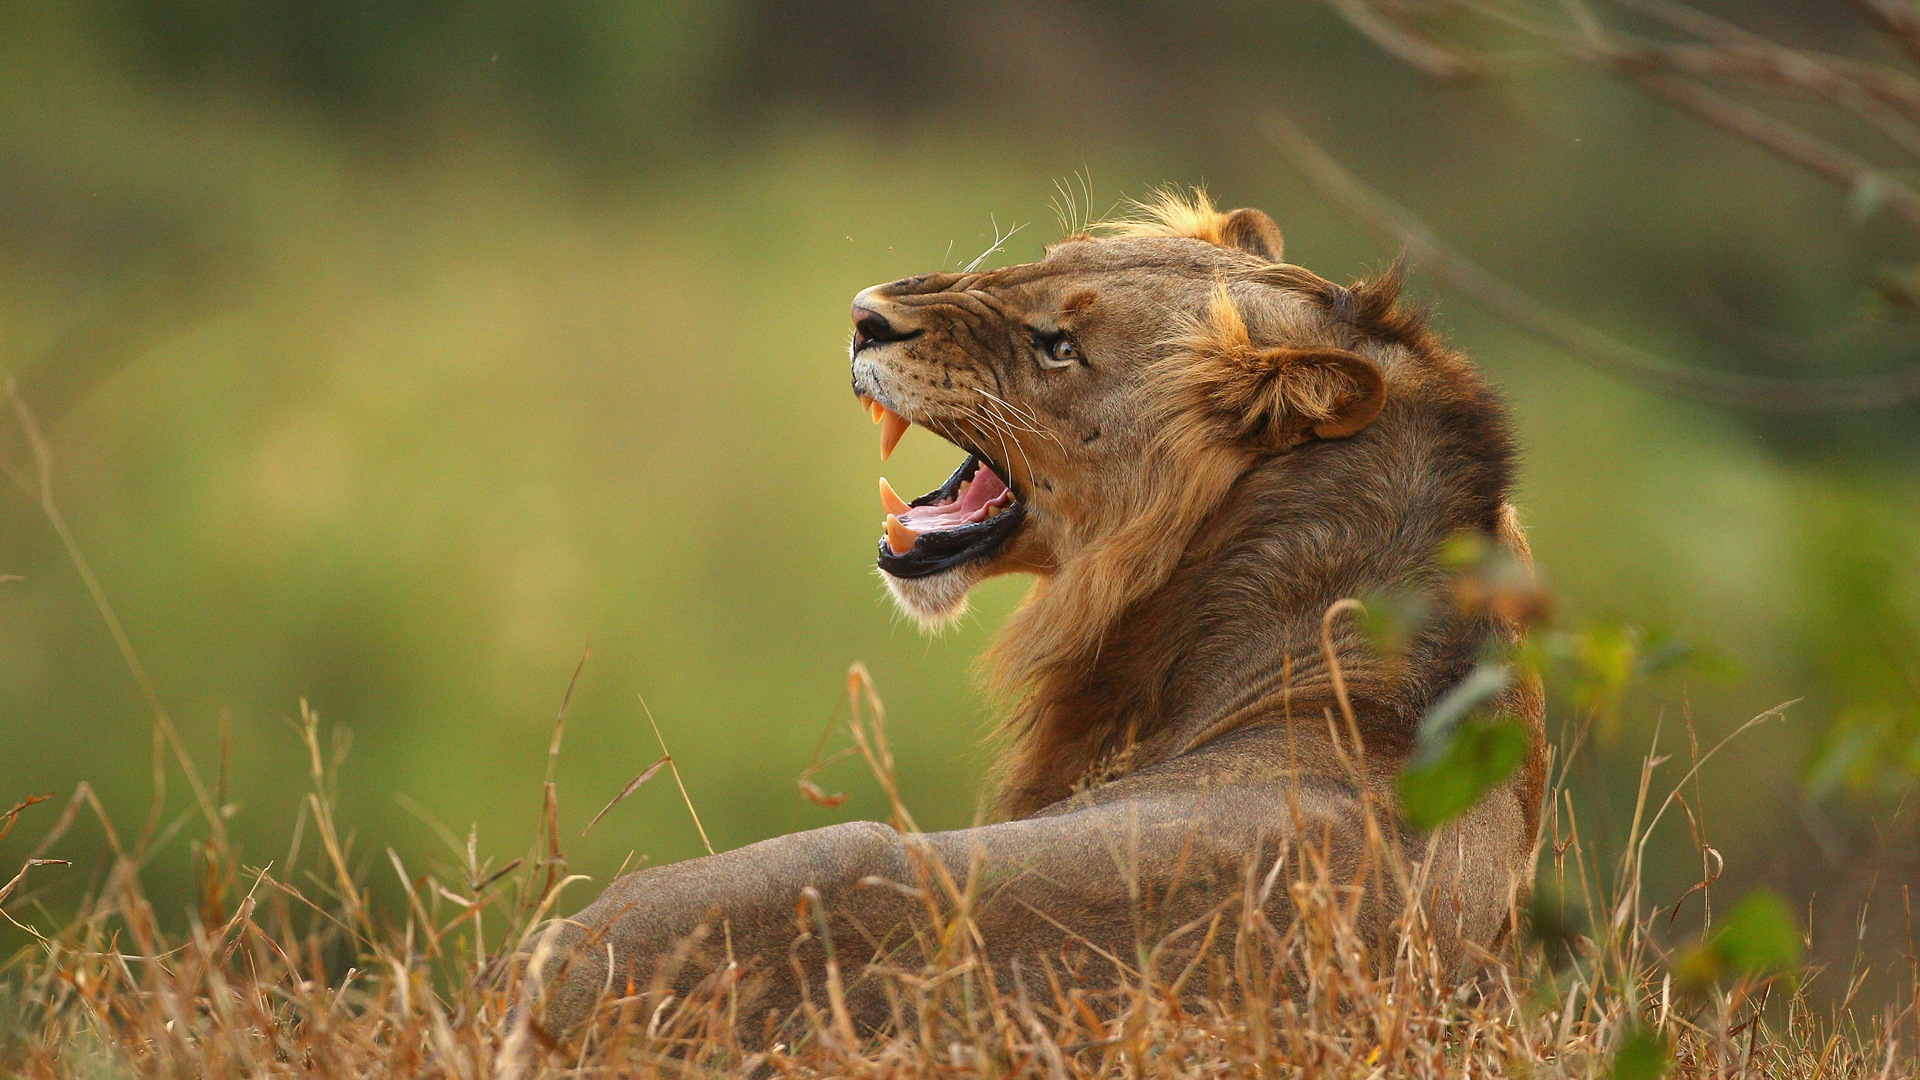 A lion on the banks of the Luvuvhu river at the Pafuri game reserve on July 21, 2010 in Kruger National Park, South Africa. (Credit: Cameron Spencer/Getty Images)